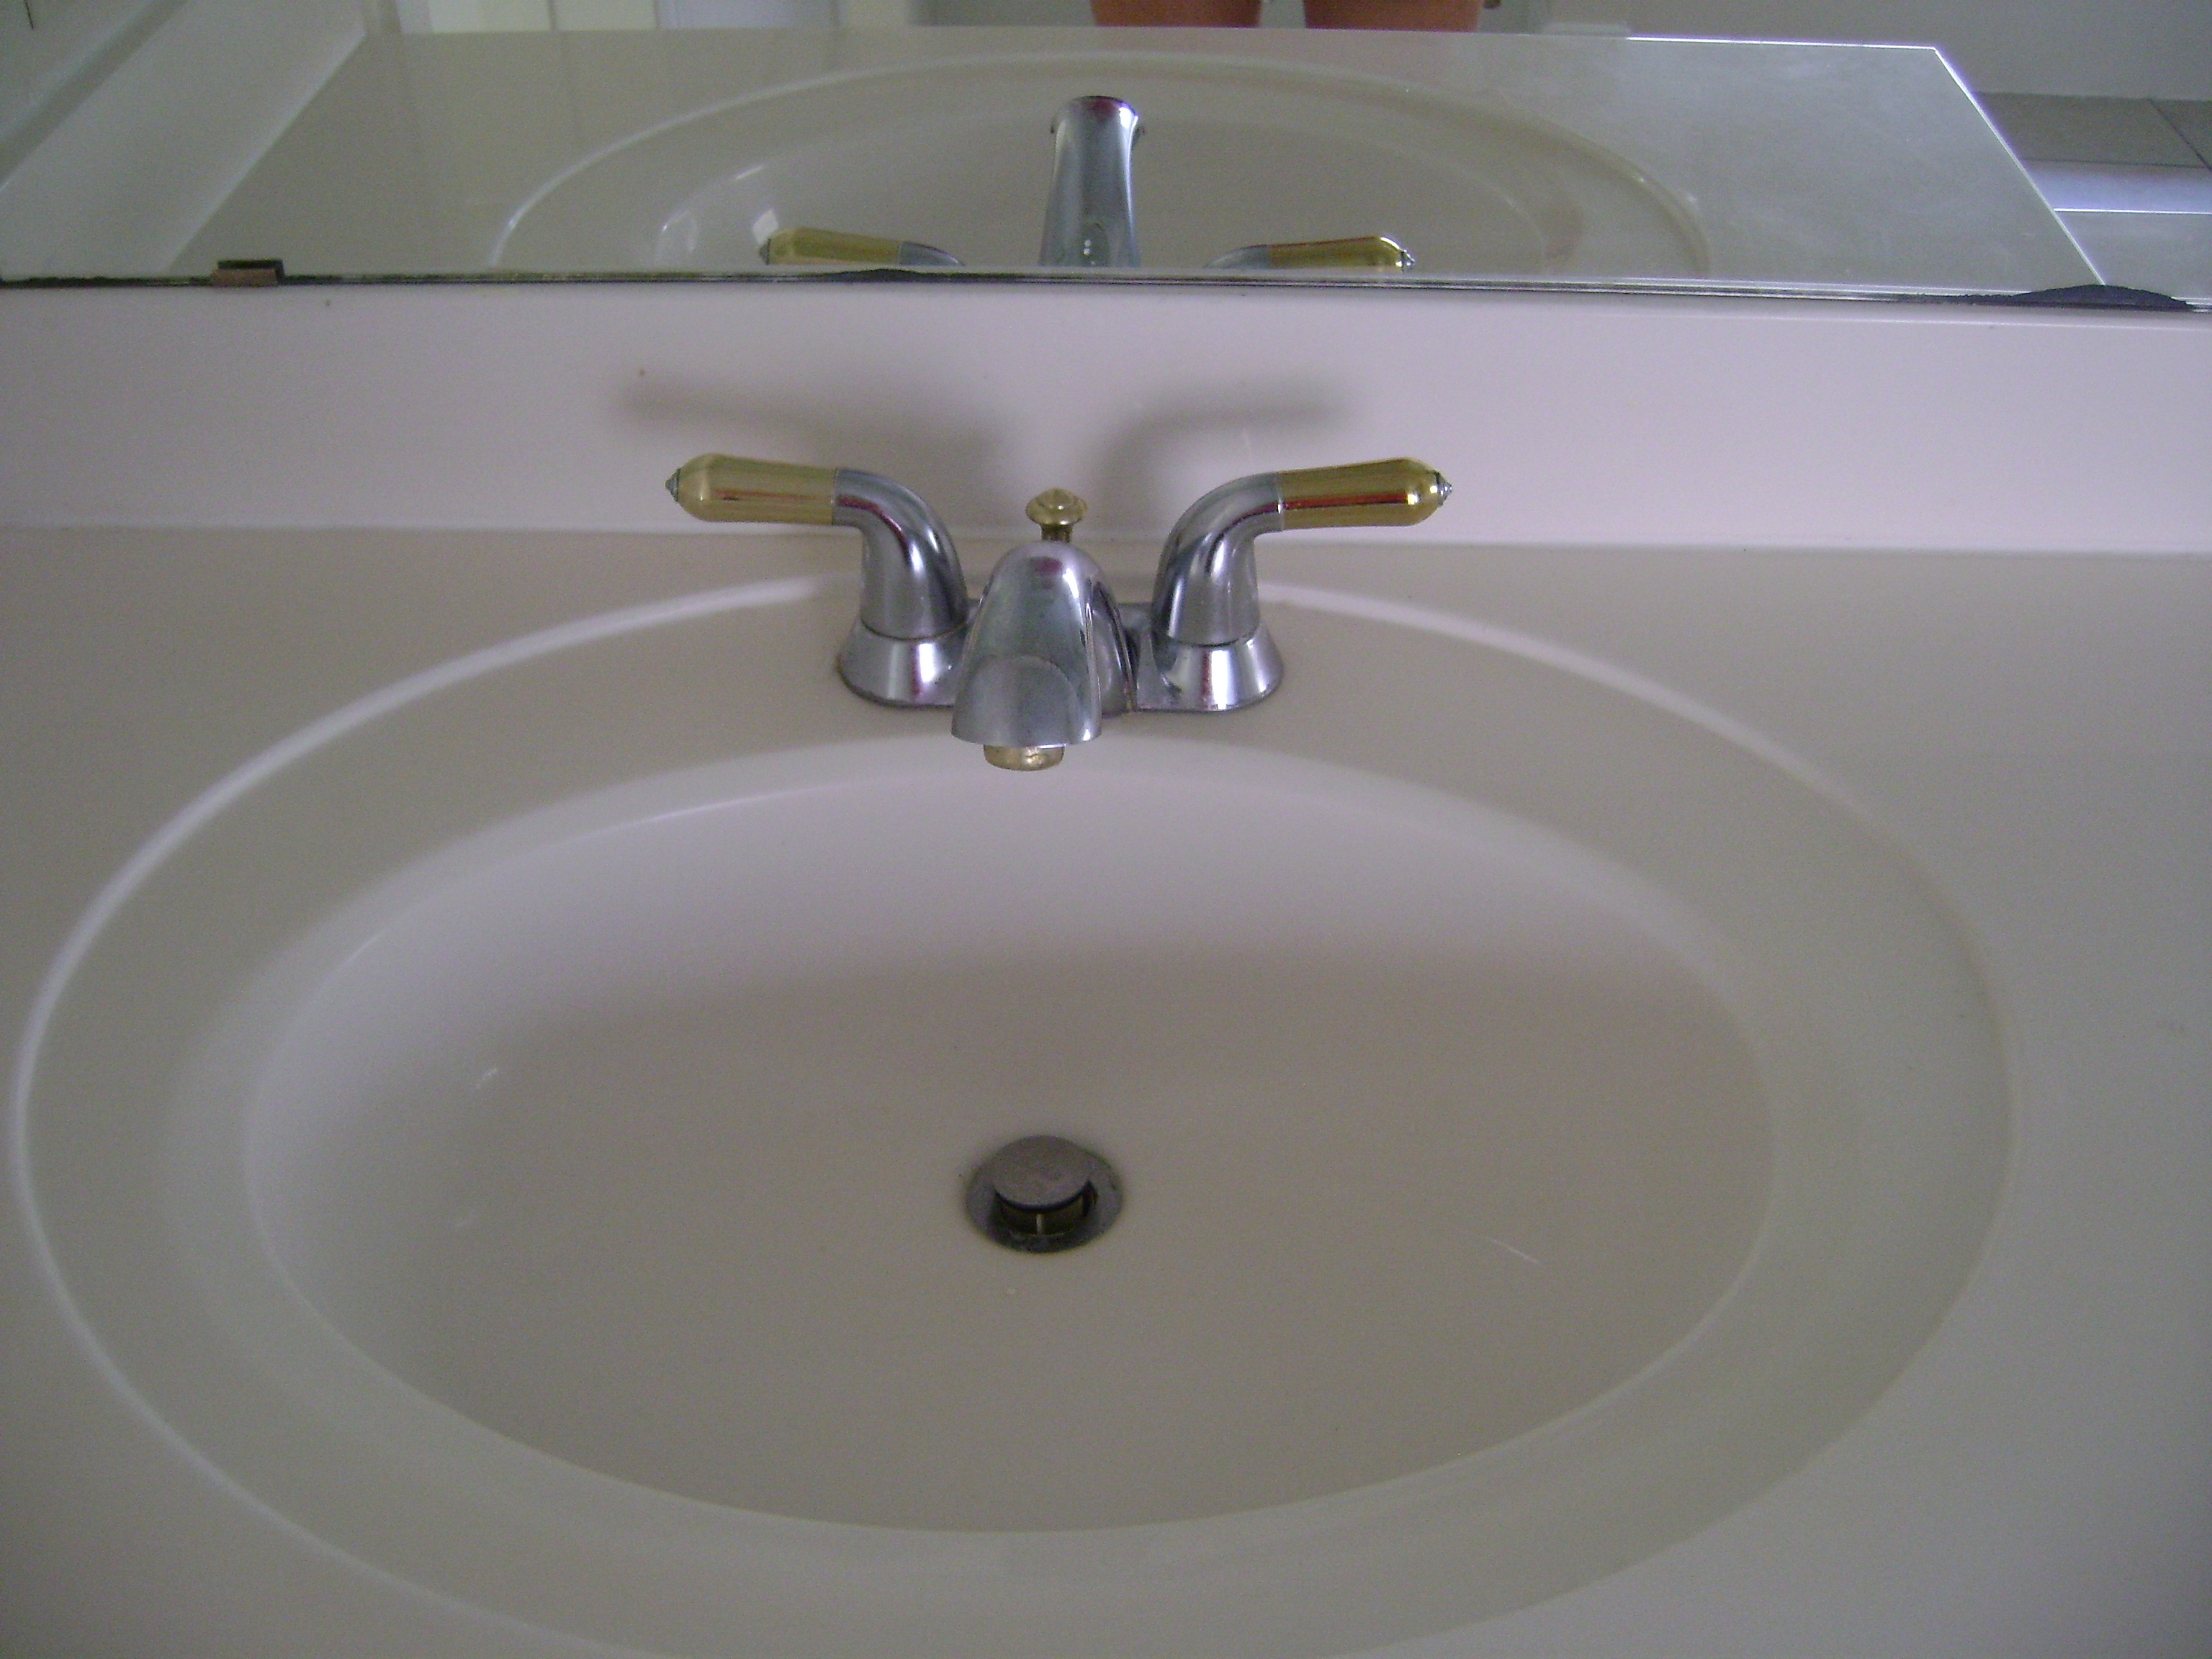 How to install a bidet faucet bathroom - How to replace a bathroom sink faucet ...